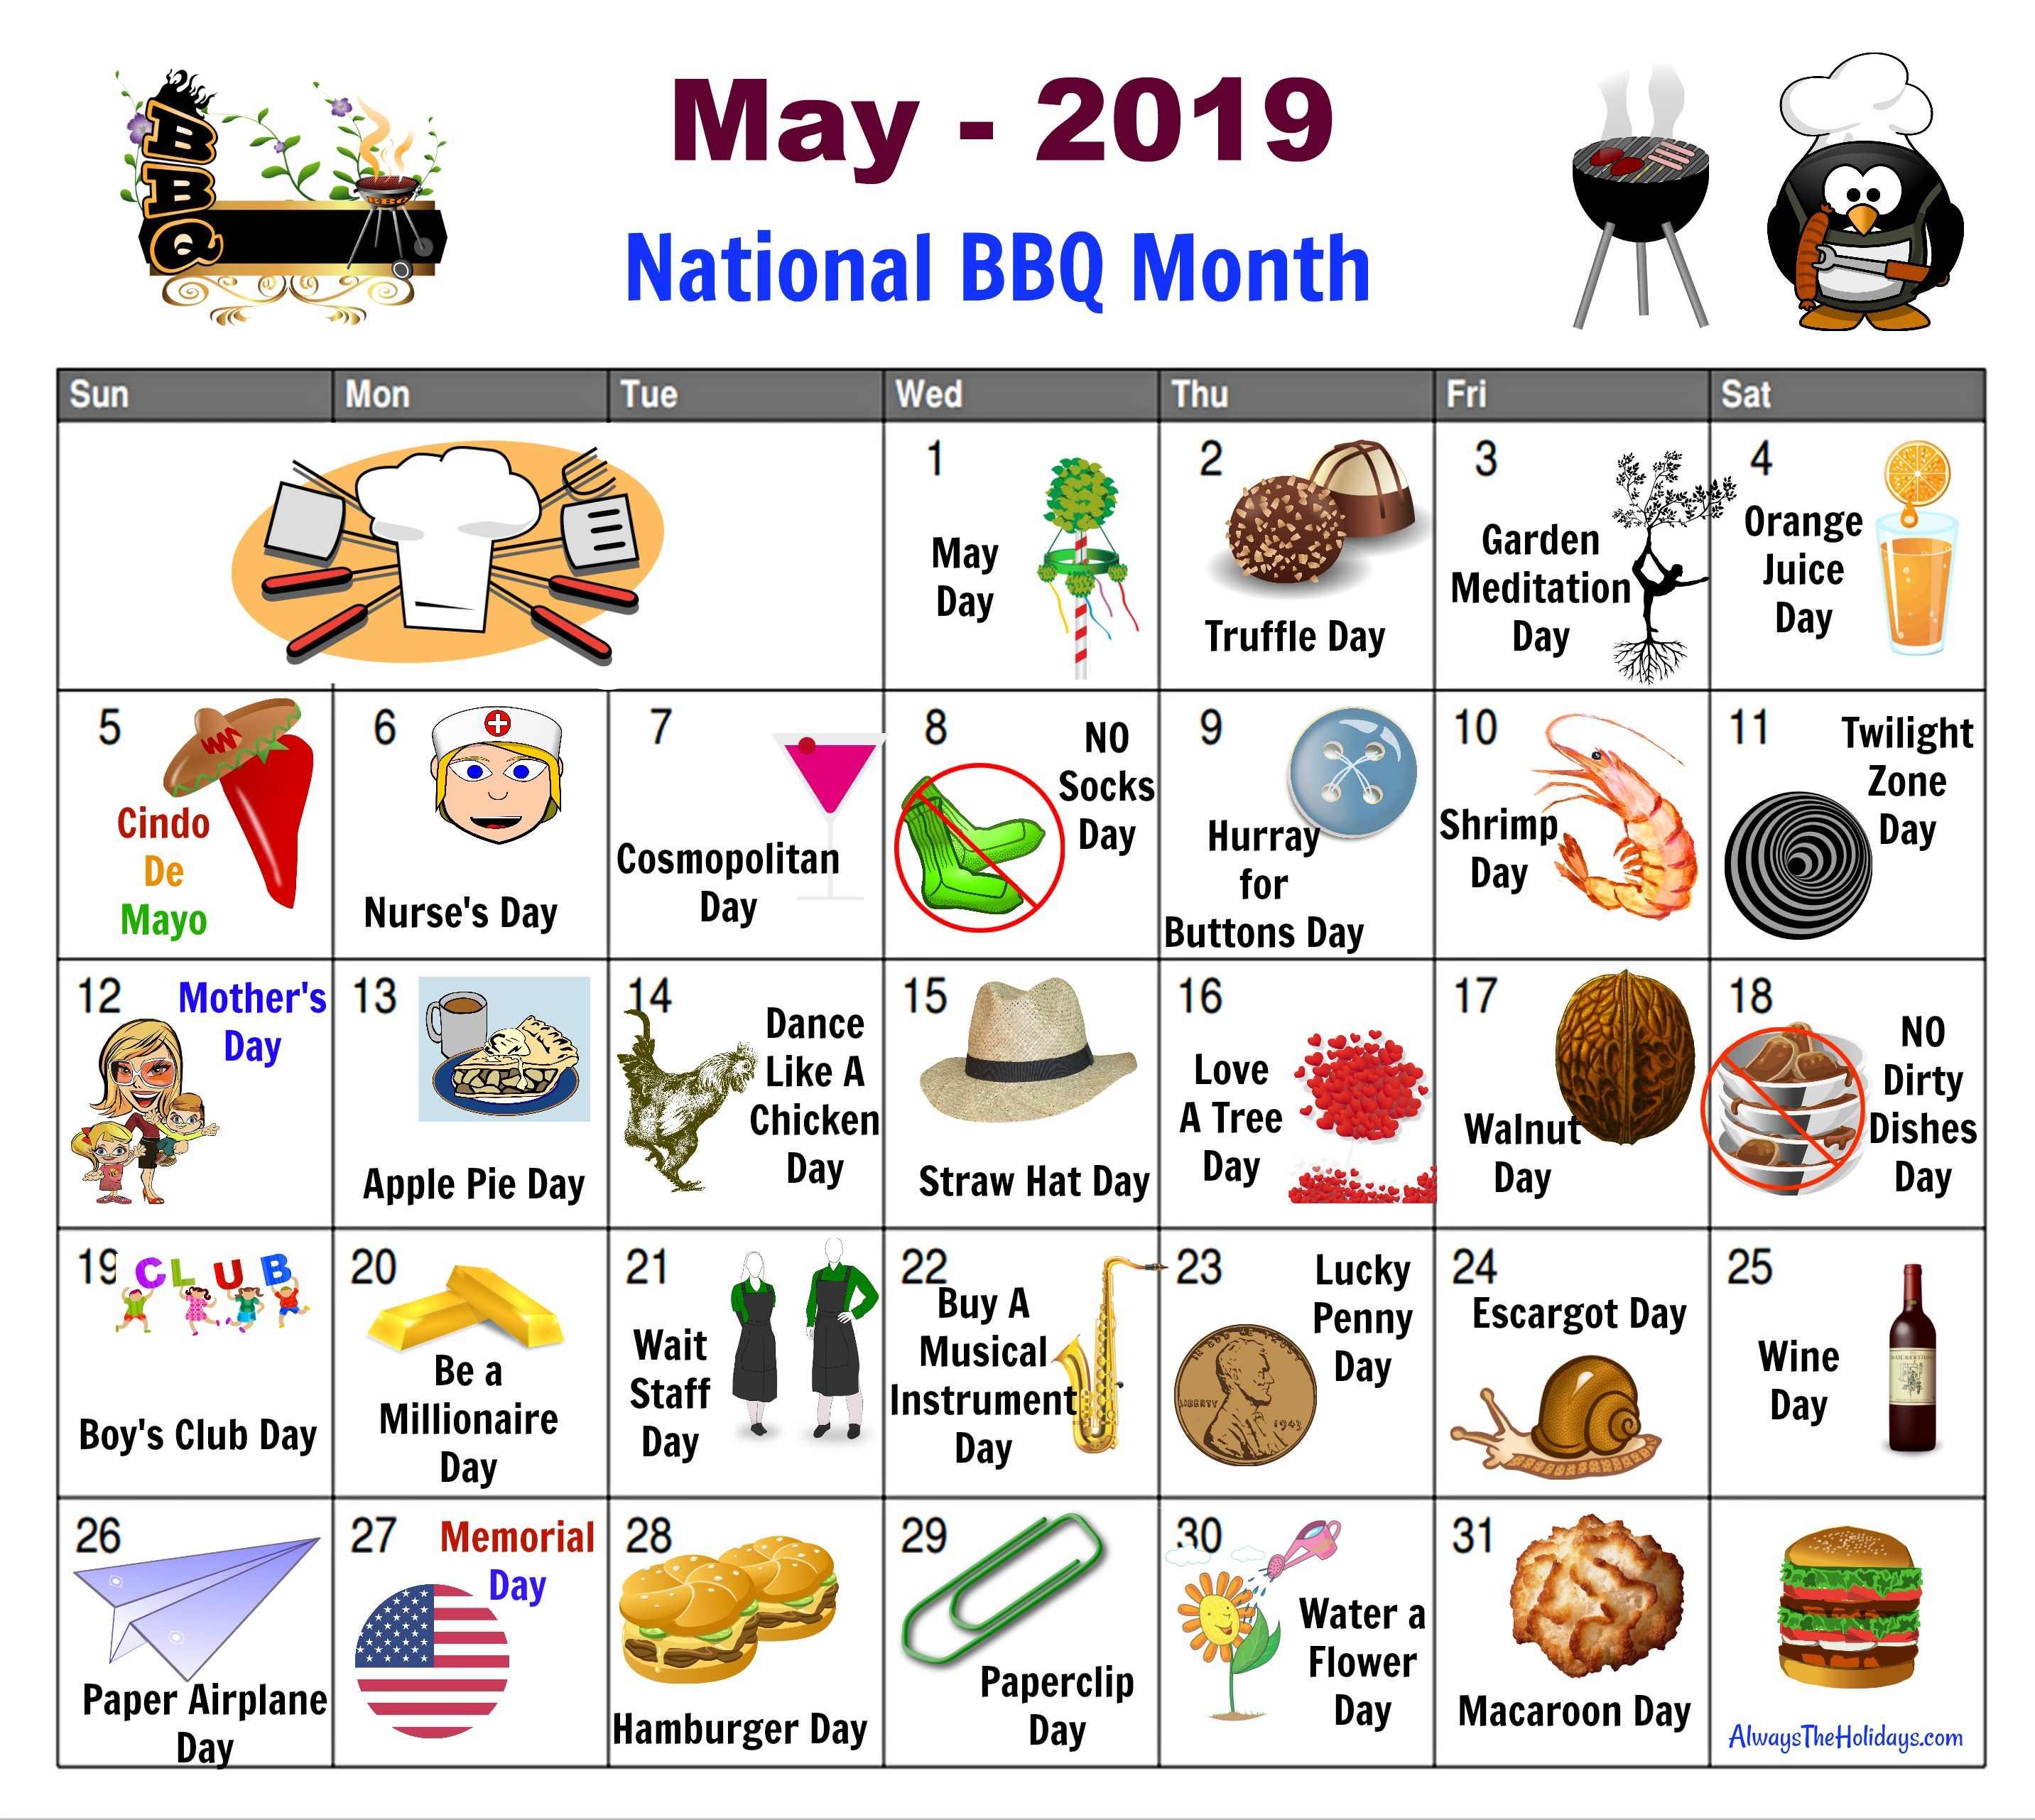 May National Day Calendar  Free Printable  Always The Holidays intended for National Day Calendar June 2020